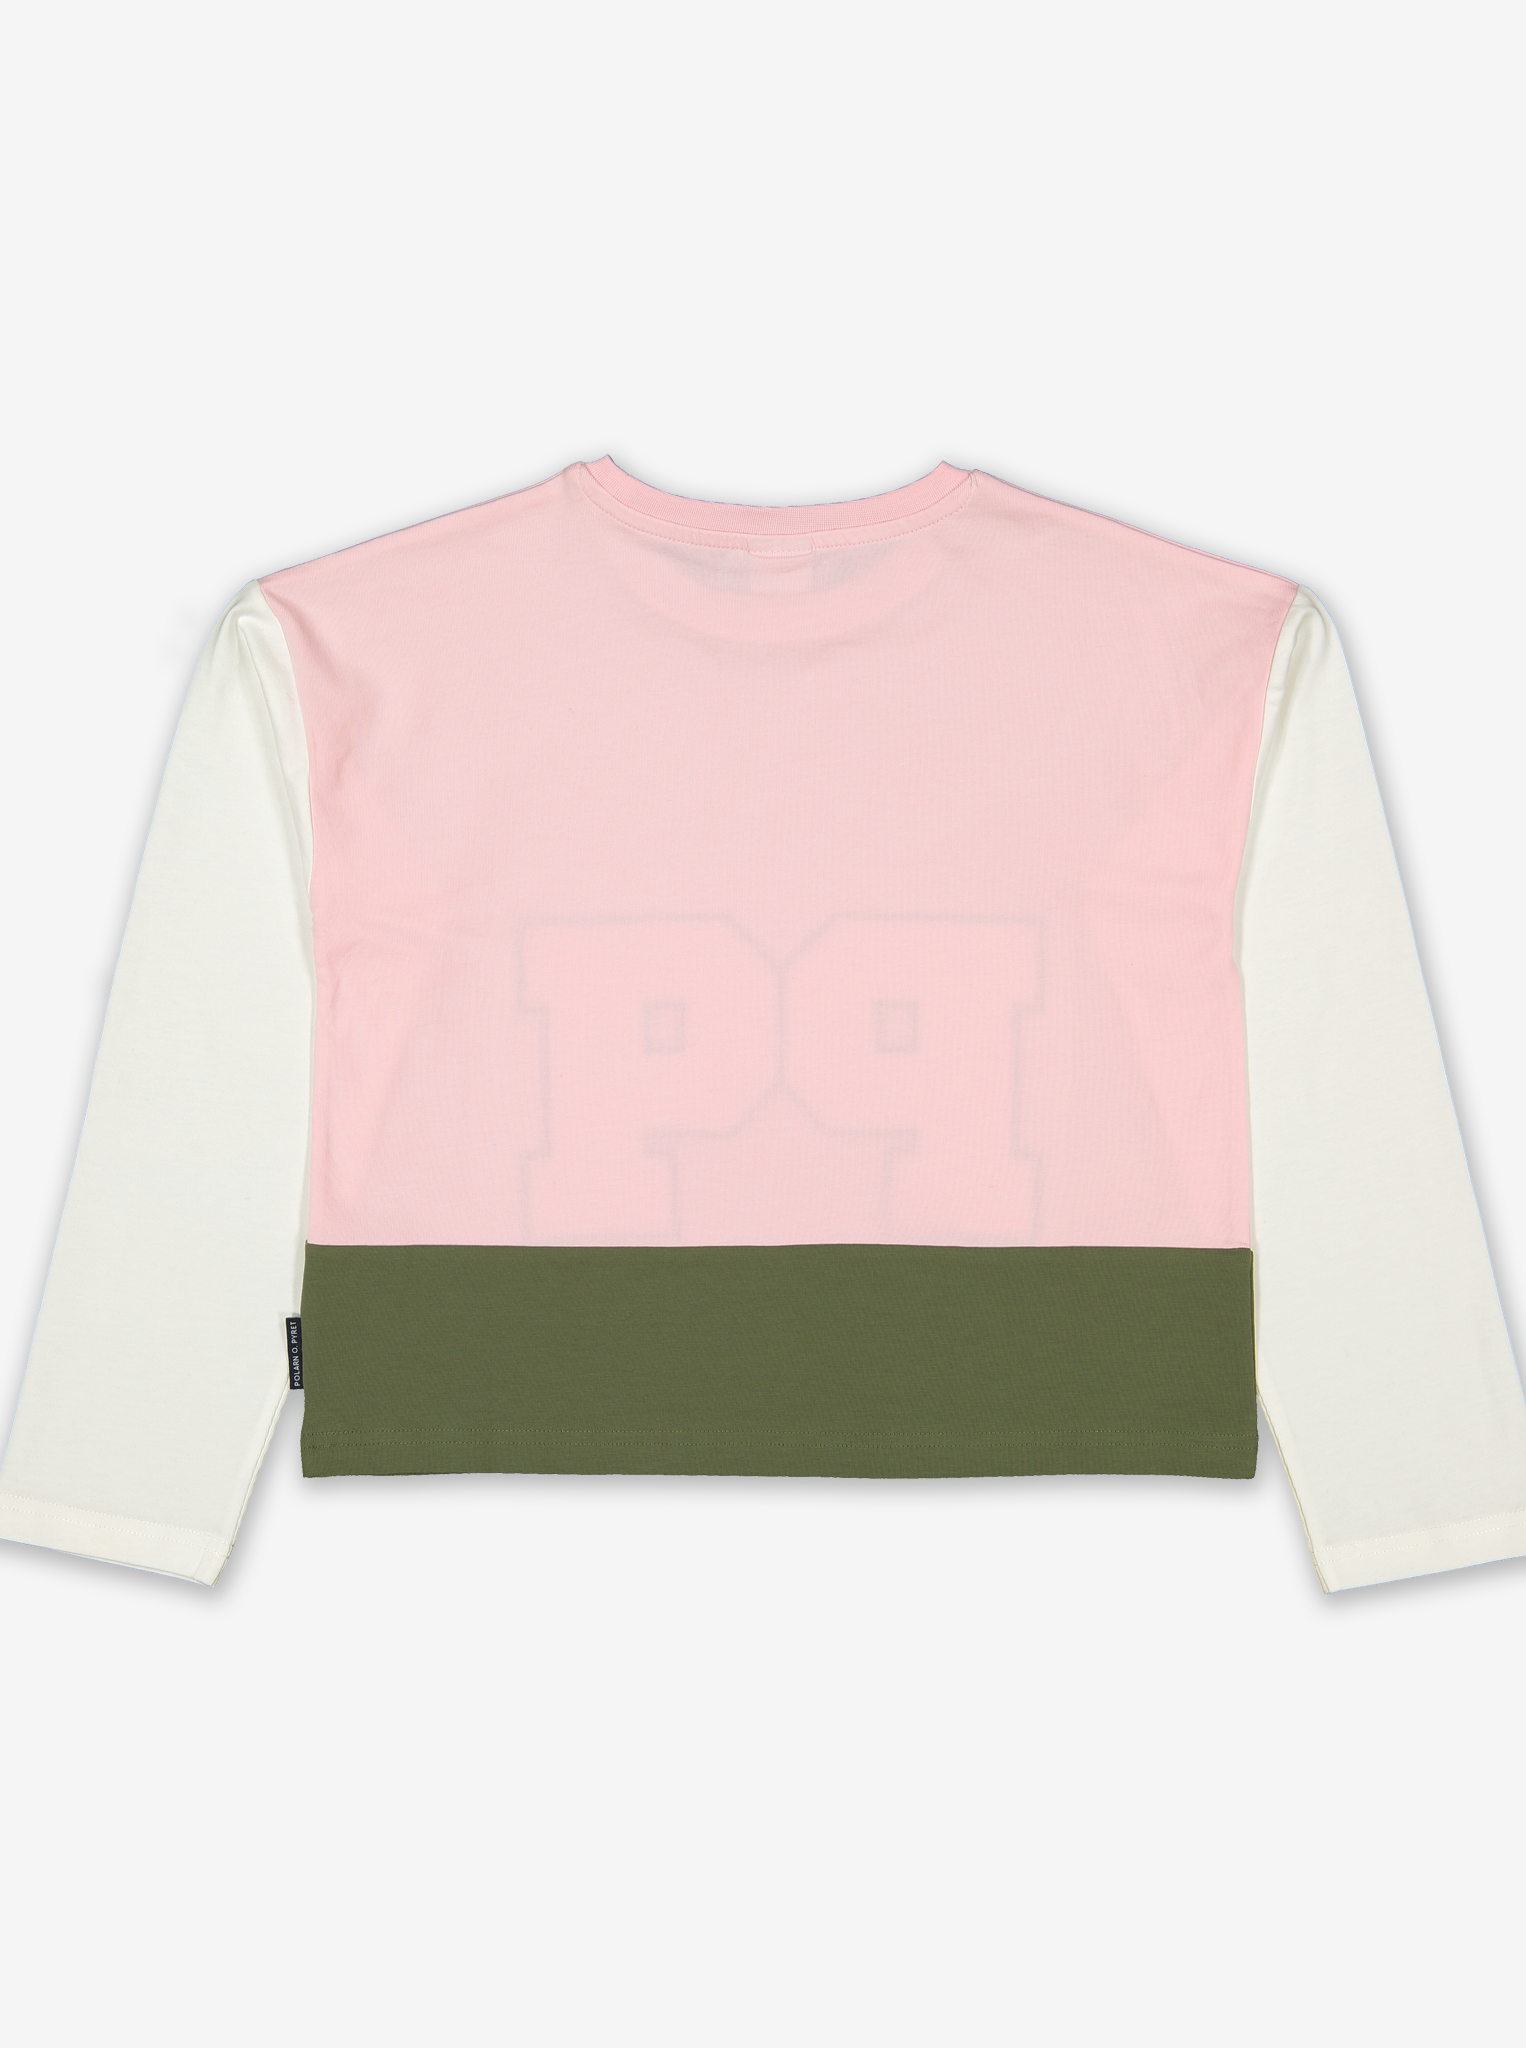 Appliqu㉠P Kids Crop Top-Girl-6-12y-Pink